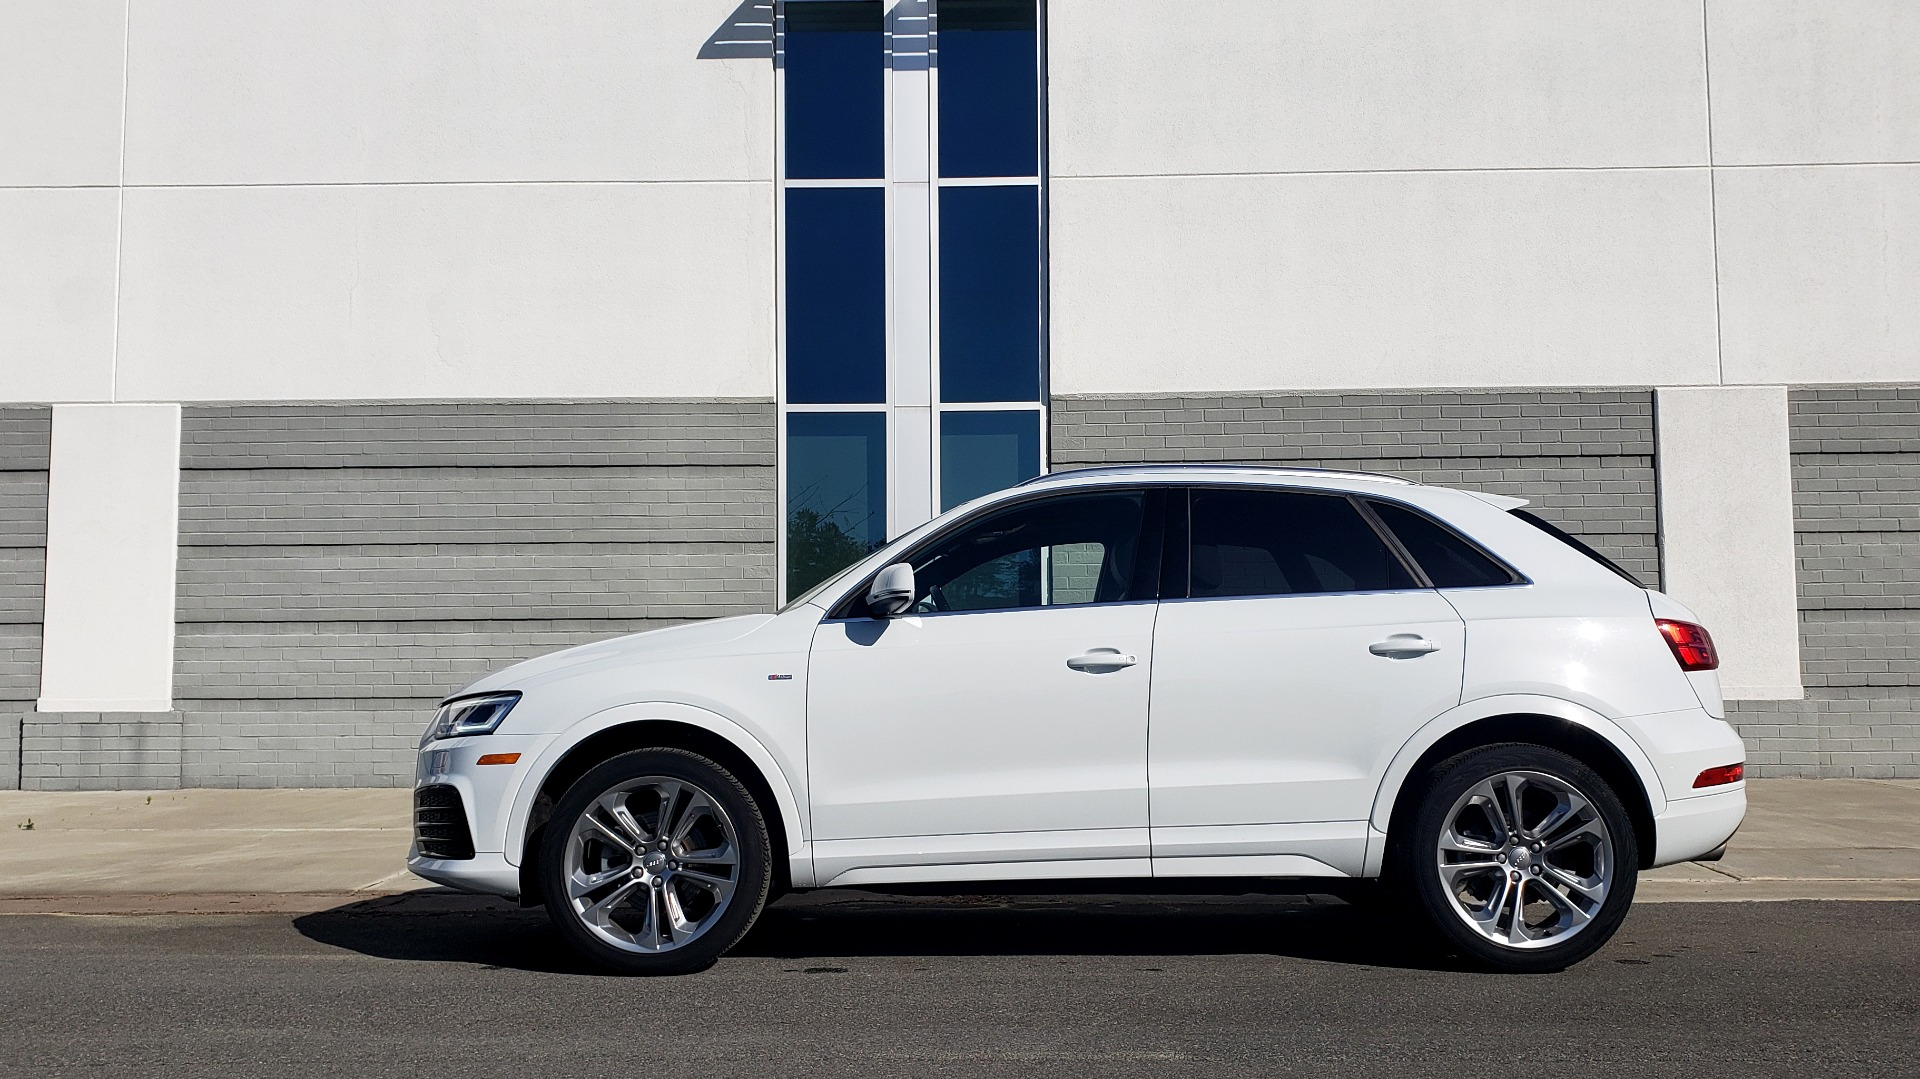 Used 2018 Audi Q3 PREMIUM PLUS 2.0T / SPORT PKG / NAV / BOSE / SUNROOF / REARVIEW for sale Sold at Formula Imports in Charlotte NC 28227 2